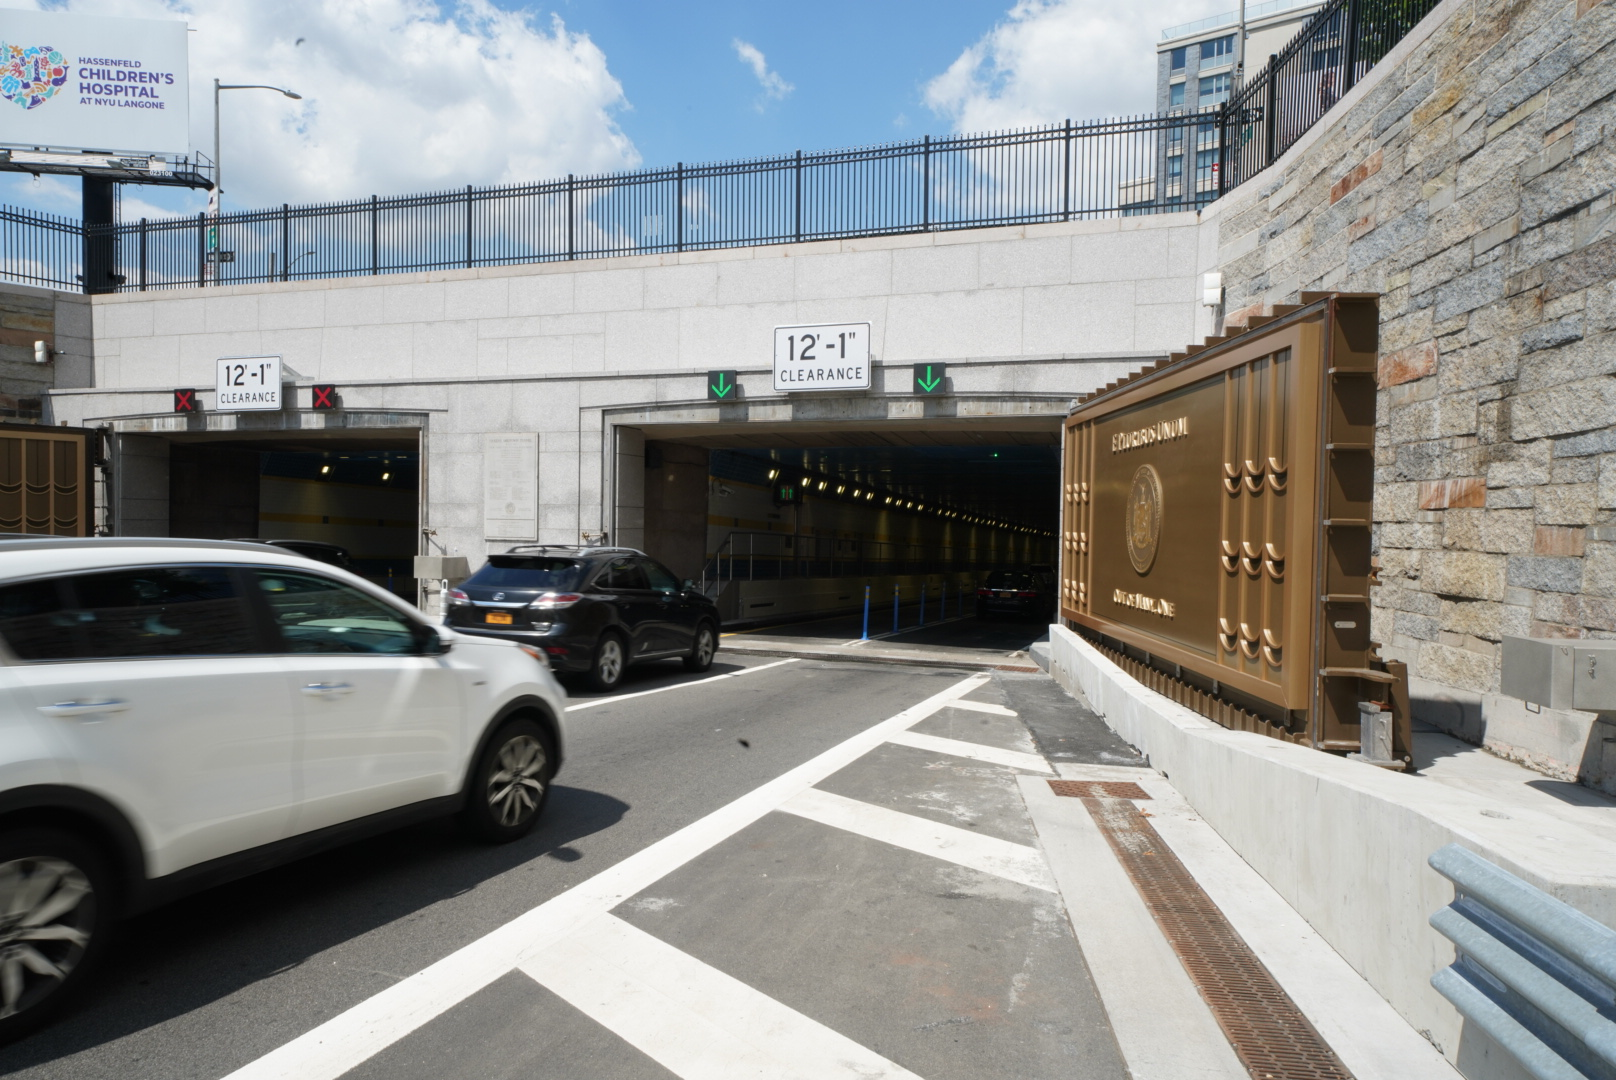 Drivers traveling into Manhattan through the Midtown Tunnel would experience a toll hike if the state legislature passes a congestion pricing measure. Photo via the Governor's Office/Flickr.